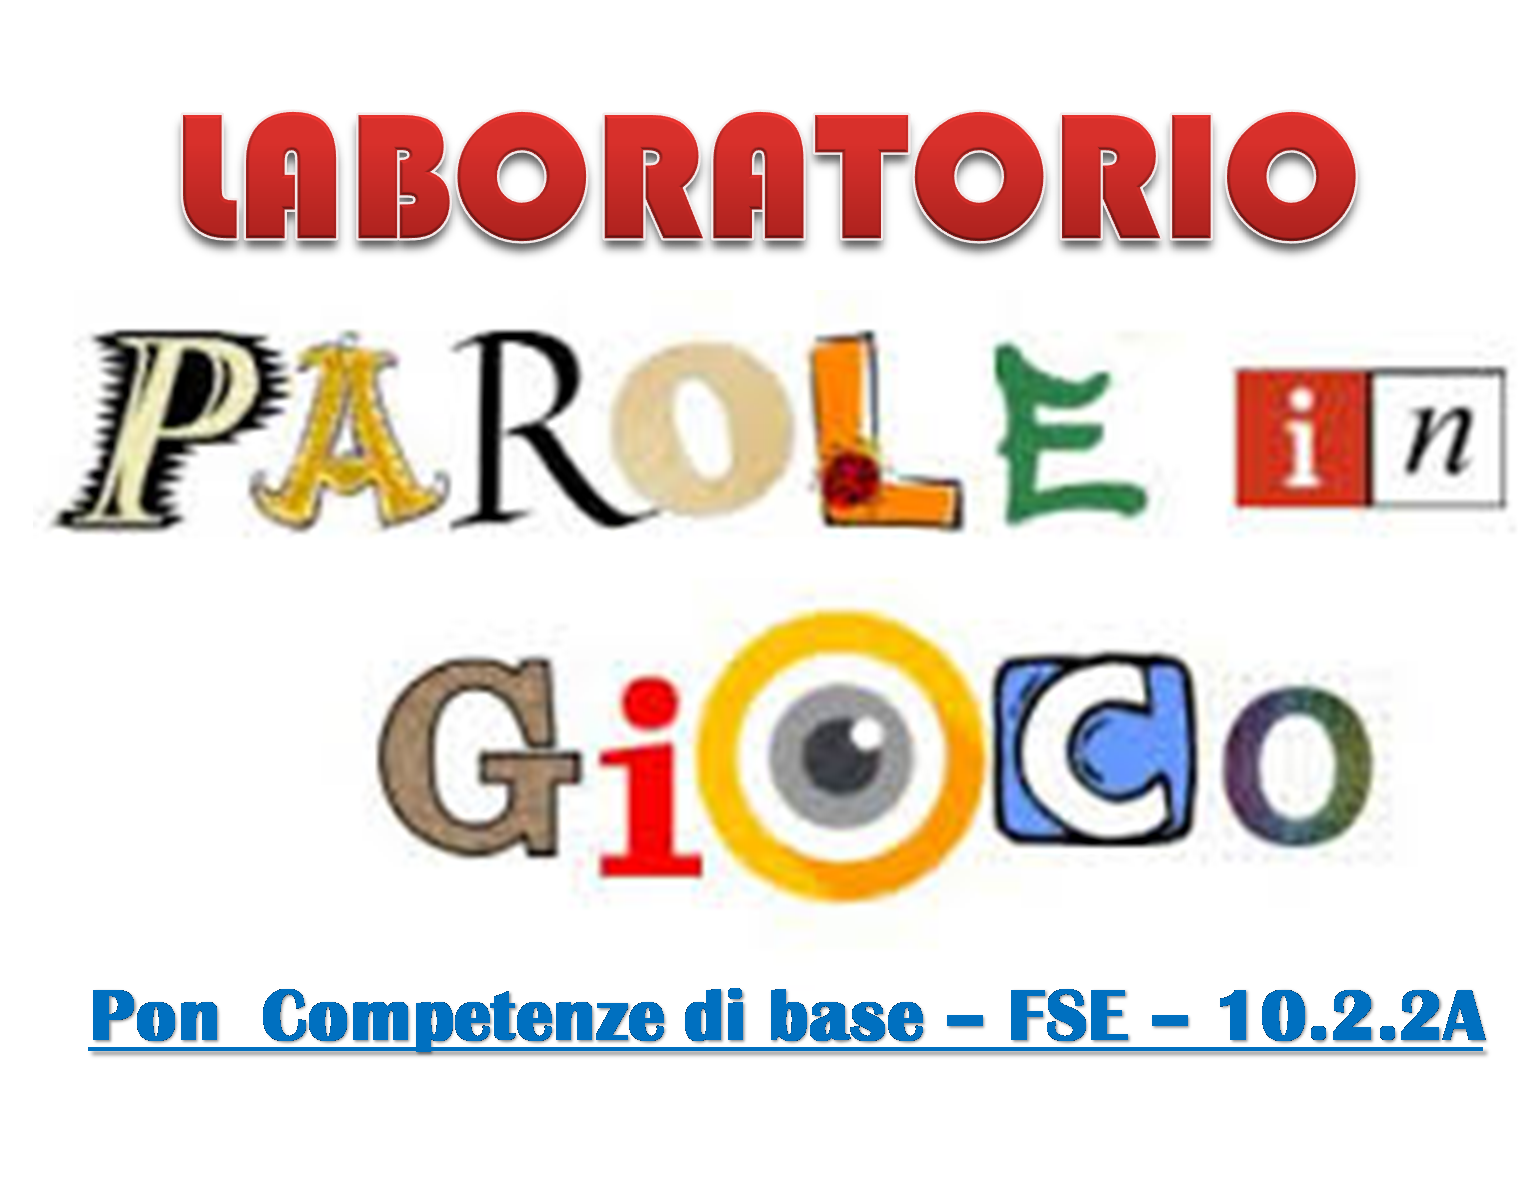 Laboratorio Parole in gioco